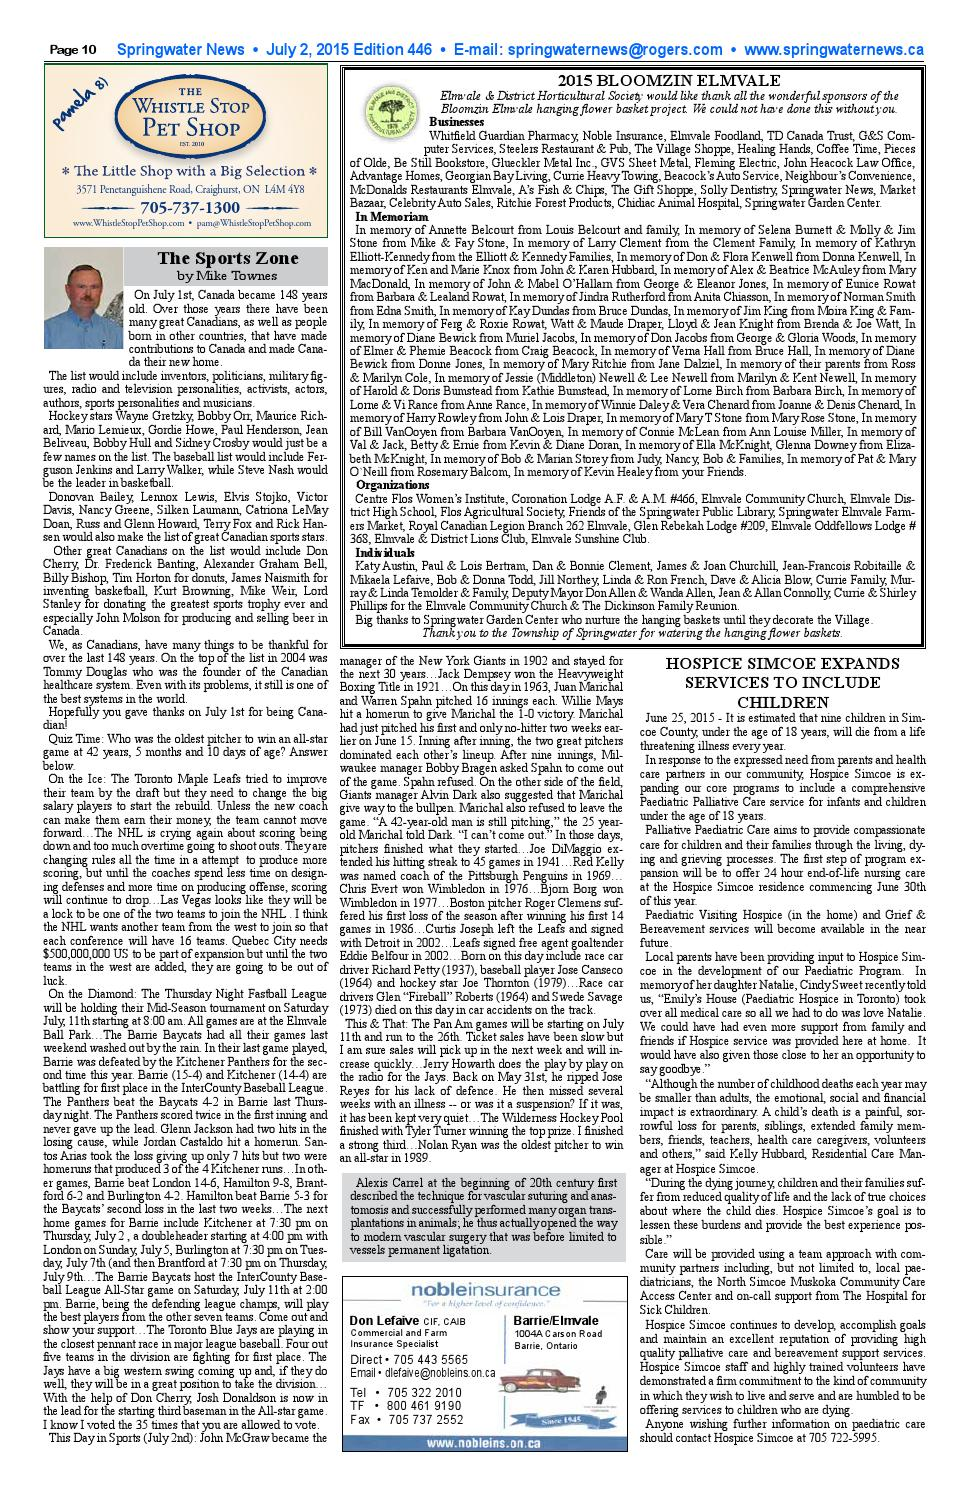 July 2 springwater news for web by Springwater News - issuu